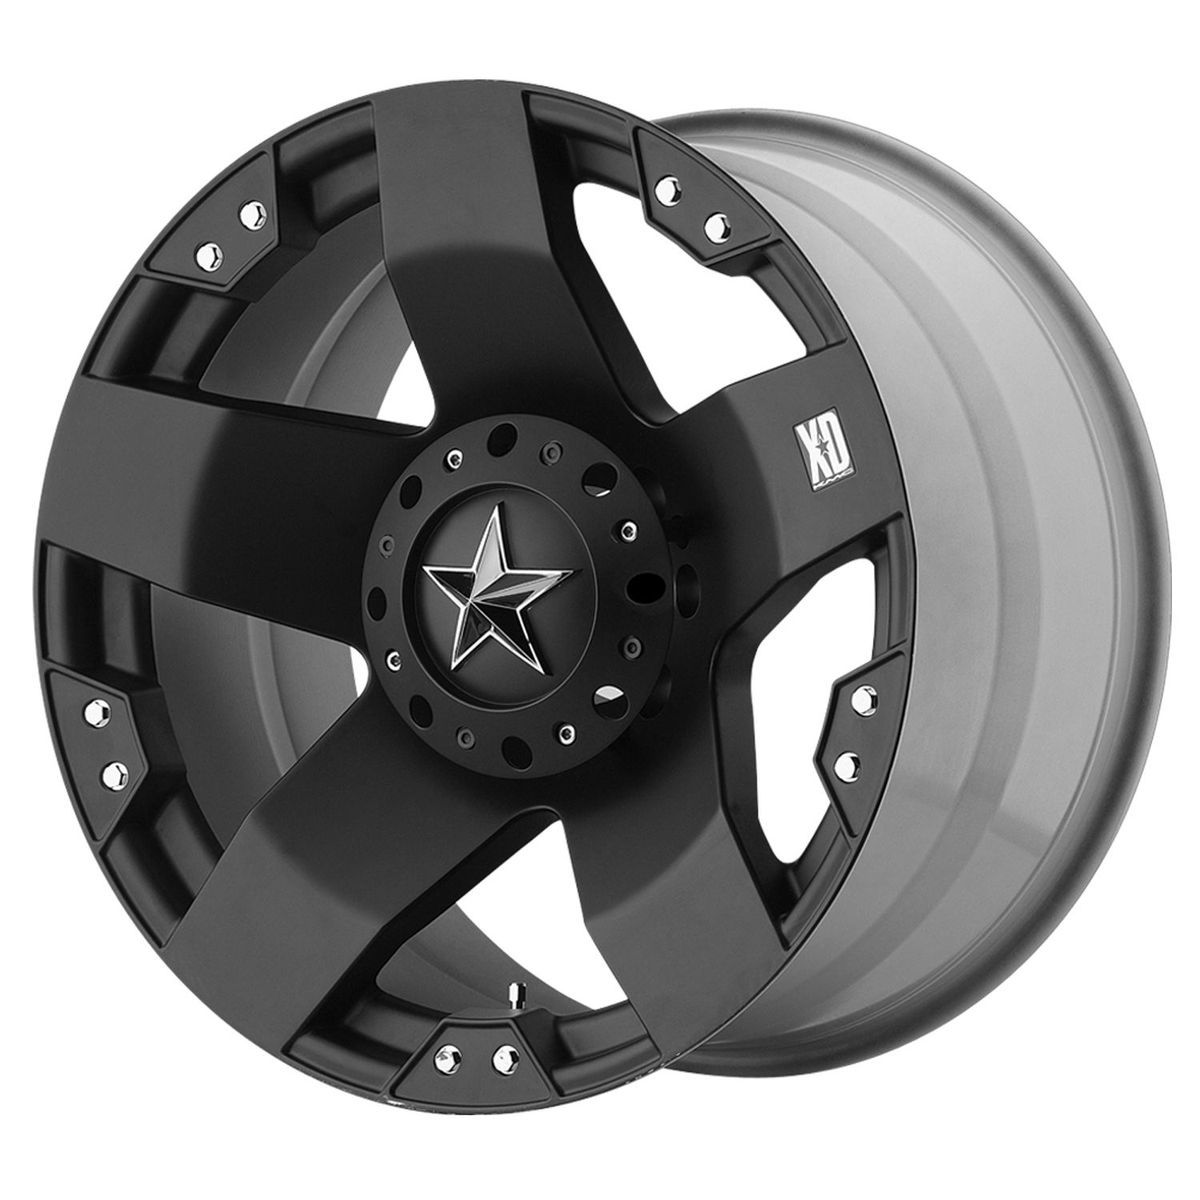 XD Series Rockstar XD775 Matte Black 6 lug Chevy Ford GMC wheels rim